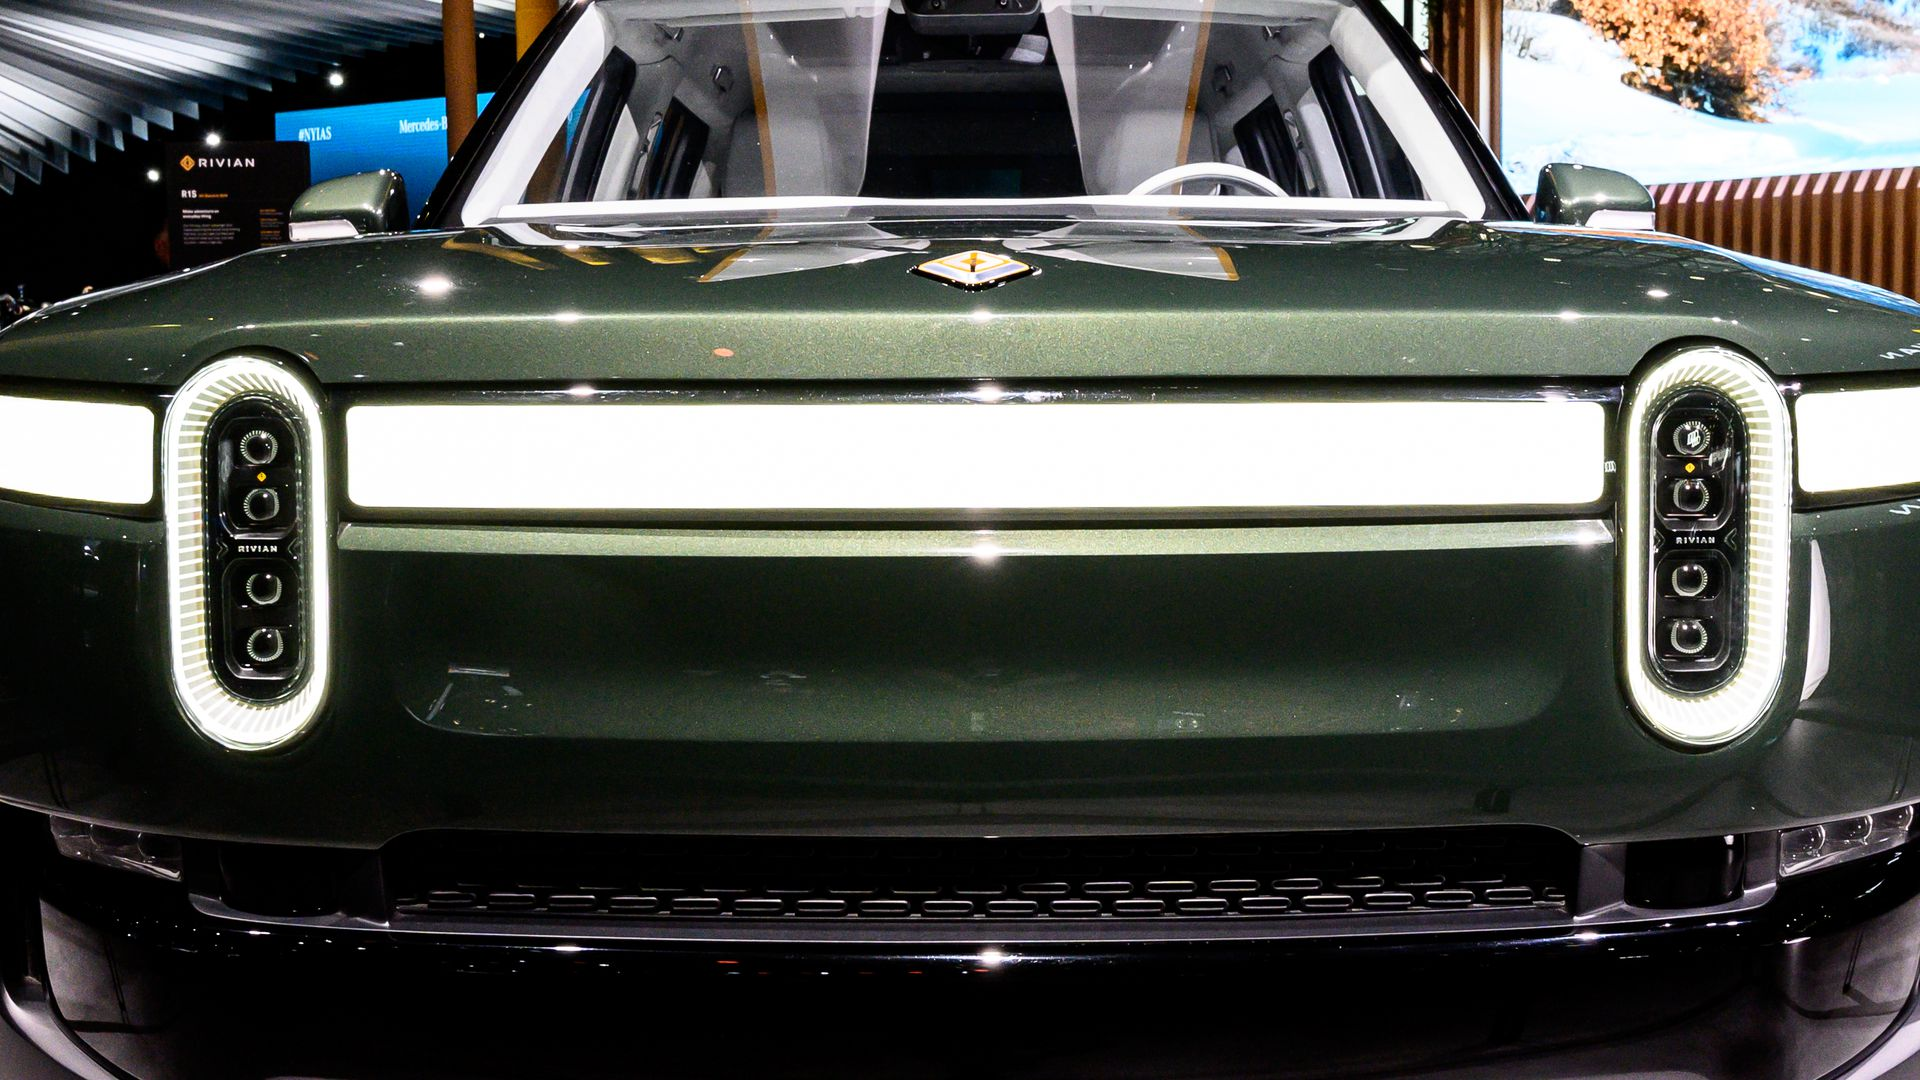 Rivian electric SUV